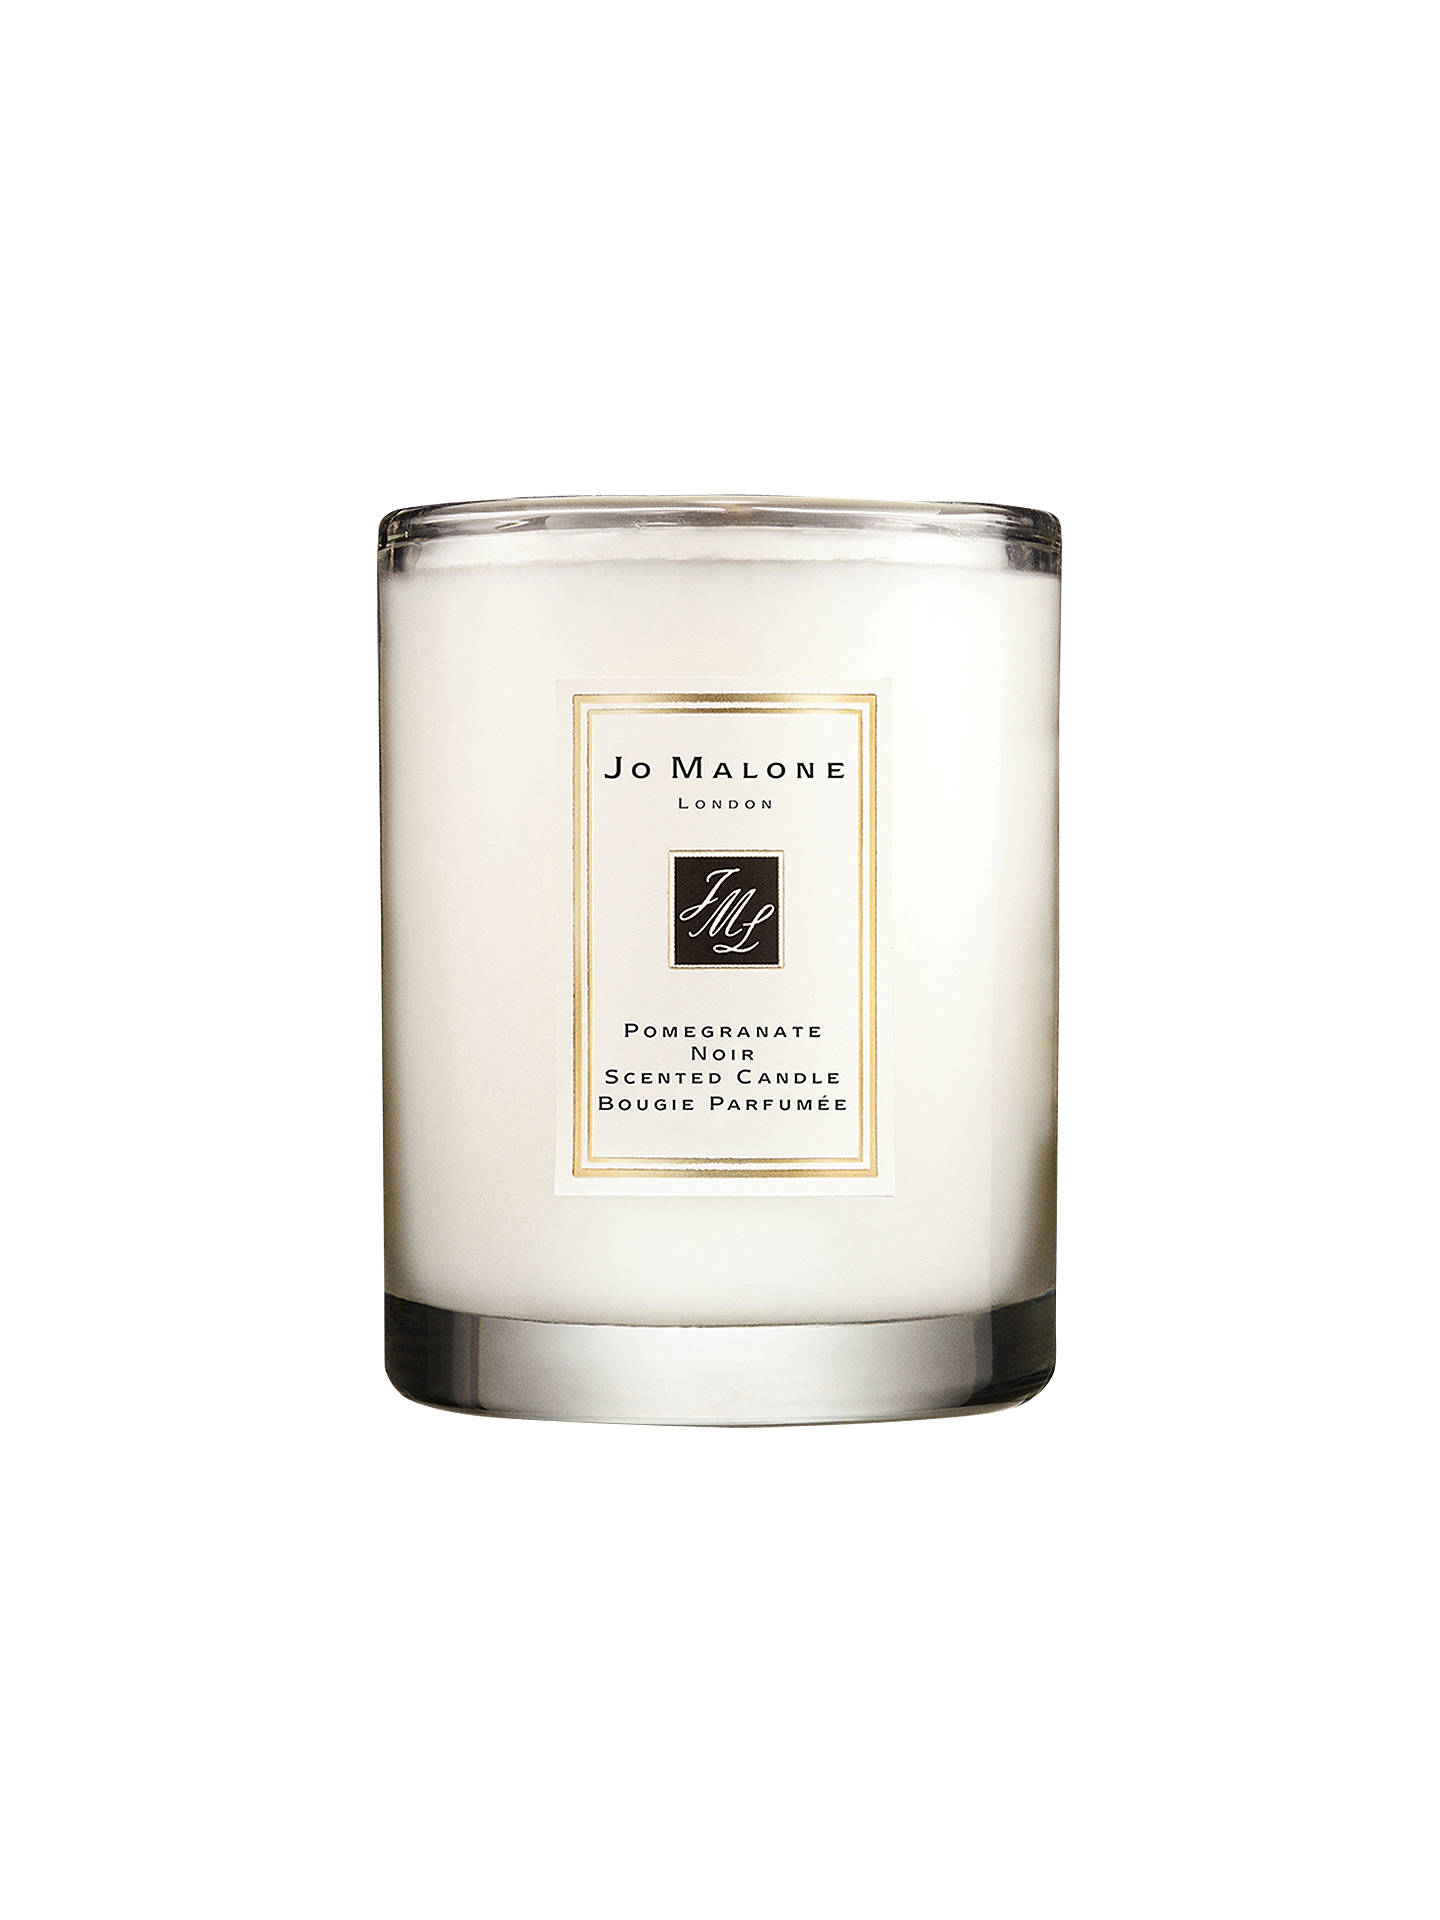 Jo Malone London Pomegranate Noir Travel Candle 60g At John Lewis